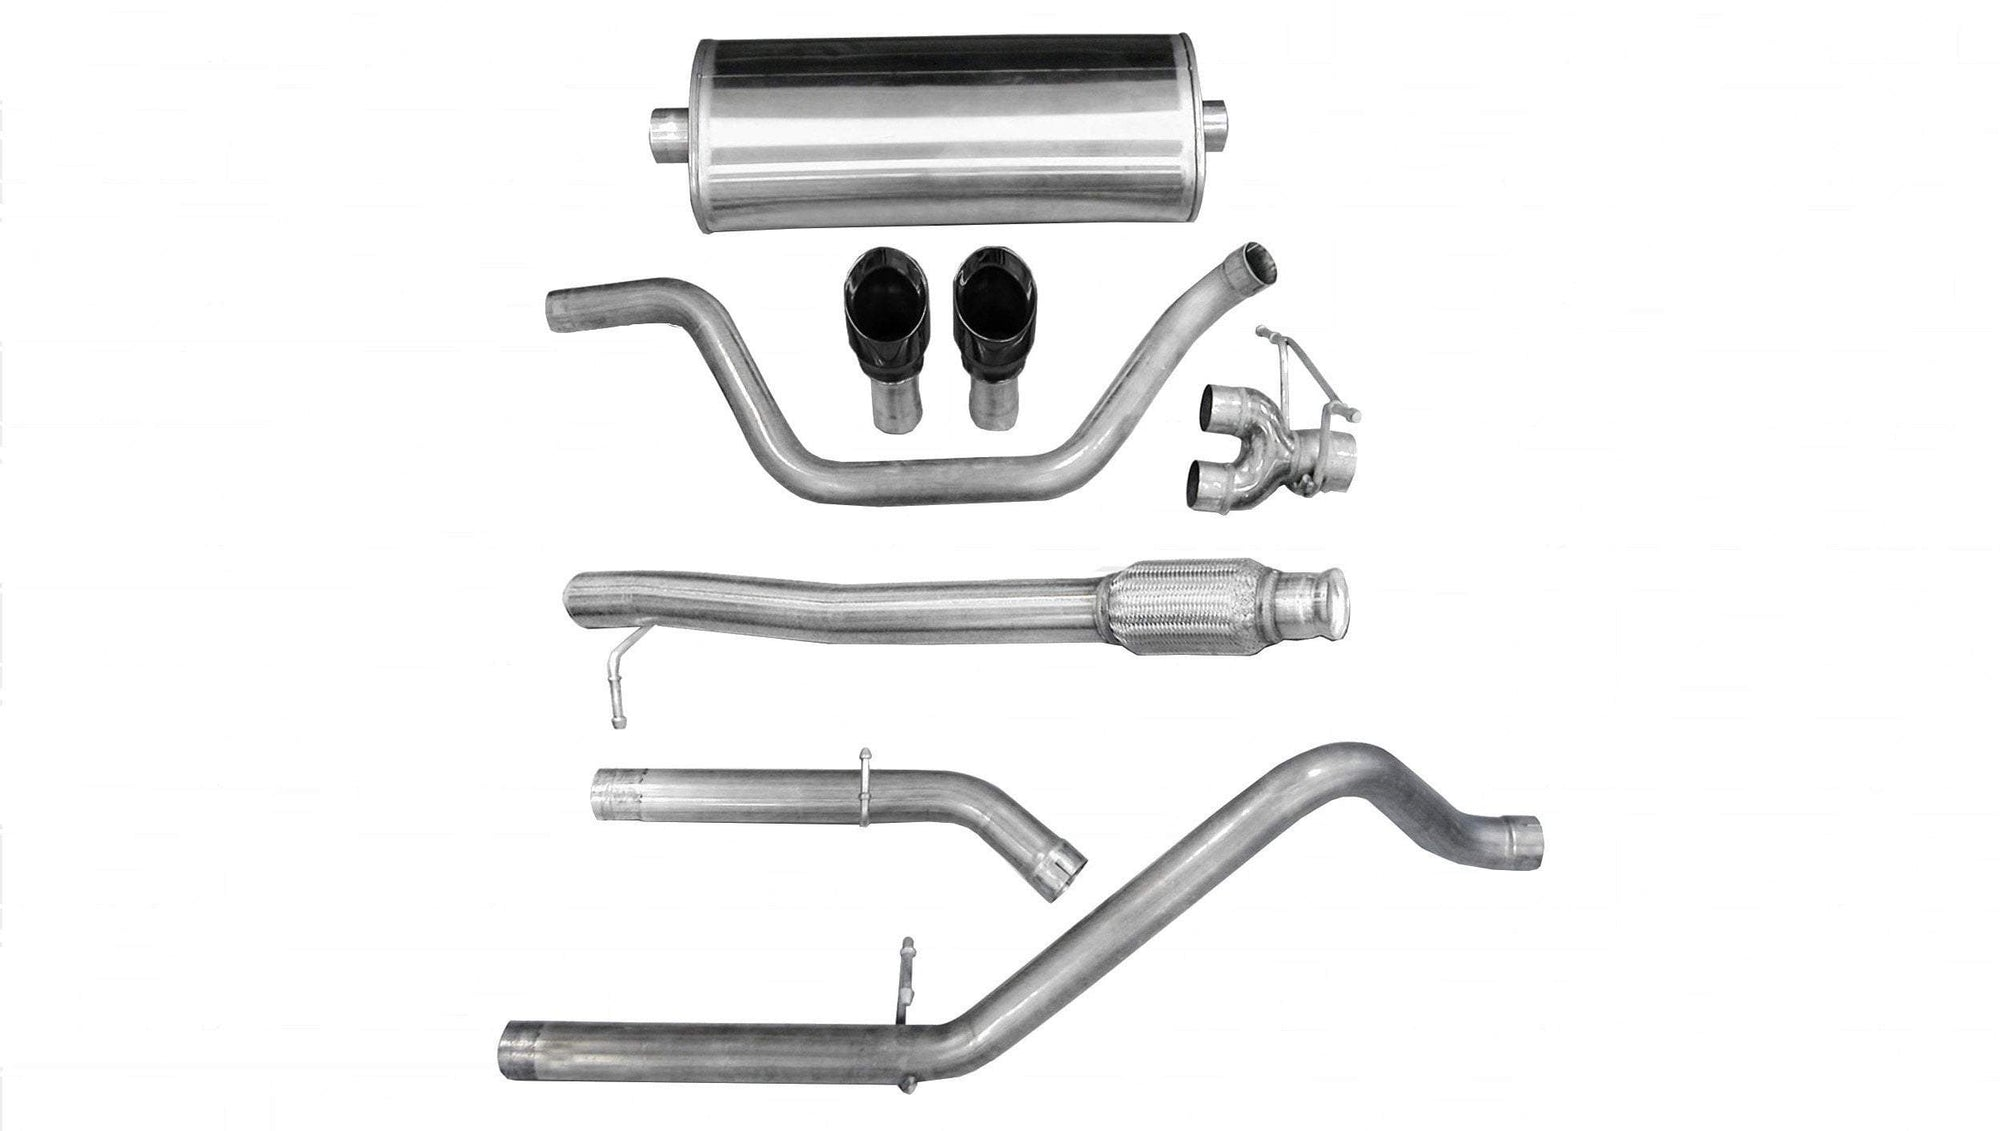 "CORSA PERFORMANCE Cat-Back Exhaust Black / Sport / Dual Rear - Single 4in 2009 Silverado, Sierra 4.8L, 5.3L, 6.0L V8 3.0"" Dual Rear Exit Catback Exhaust System with Twin 4.0"" Tip (14906) Sport Sound Level"